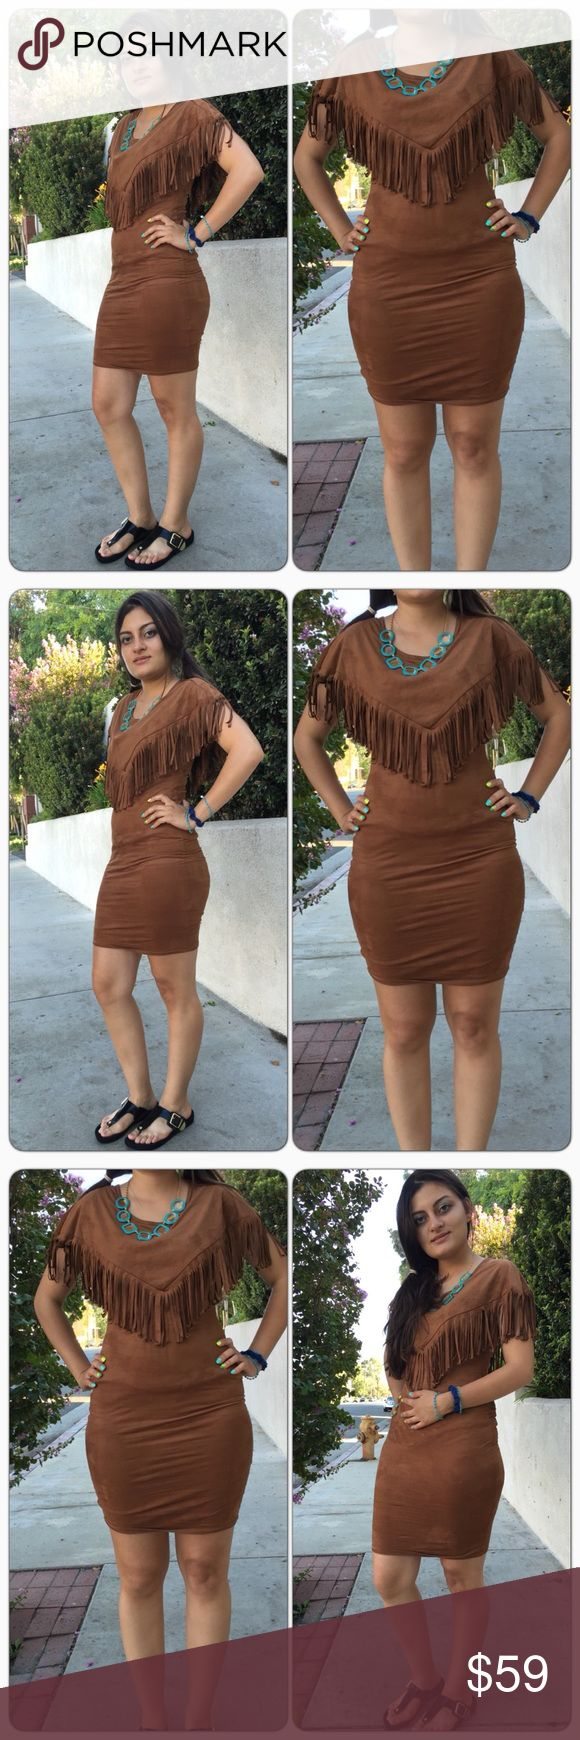 Fringe Fall Brown Mini Dress Looks exactly like the pictures. NWOT 📱Instgram: tavoosfashion 🌟Facebook: tavoosfashionjewelry 🎀 Website: www.tavoosfashionjewelry.com  ❌No Trade ❌No Pay Pal 🎀Price is Firm unless Bundled Dresses